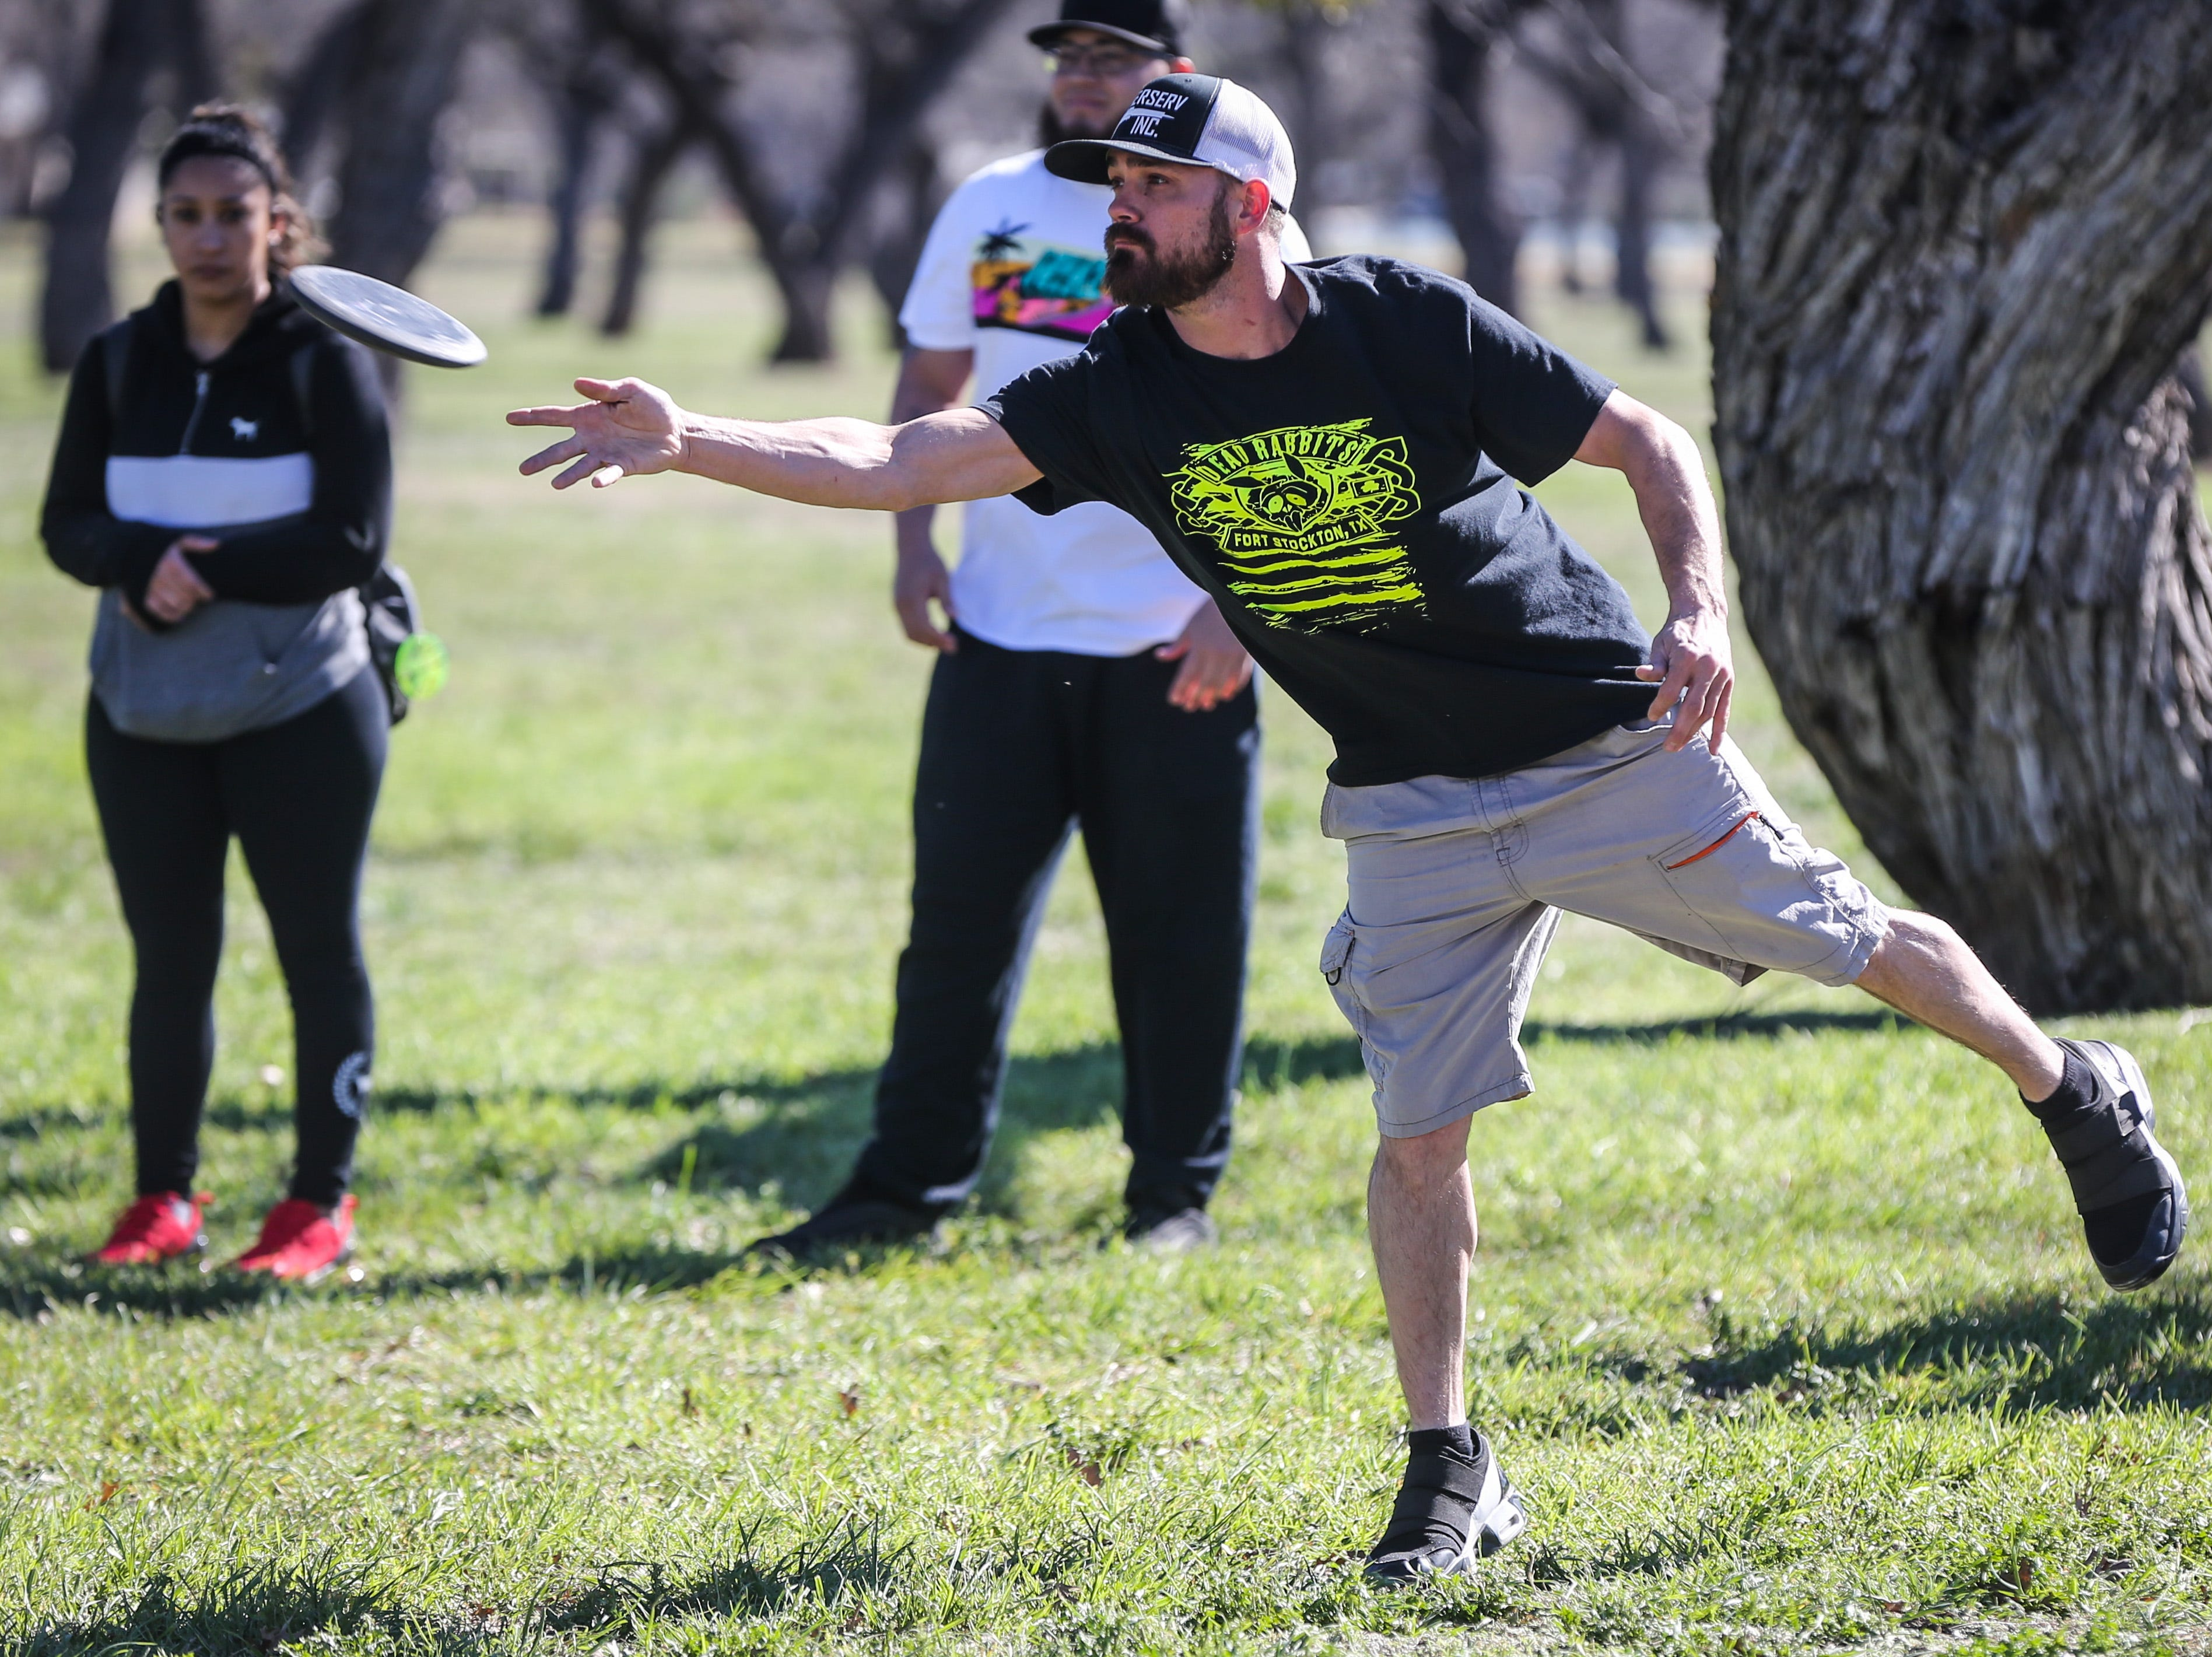 Ivan Stewart tees off during the Crush on the Concho tournament Saturday, March 9, 2019, at Middle Concho Park.